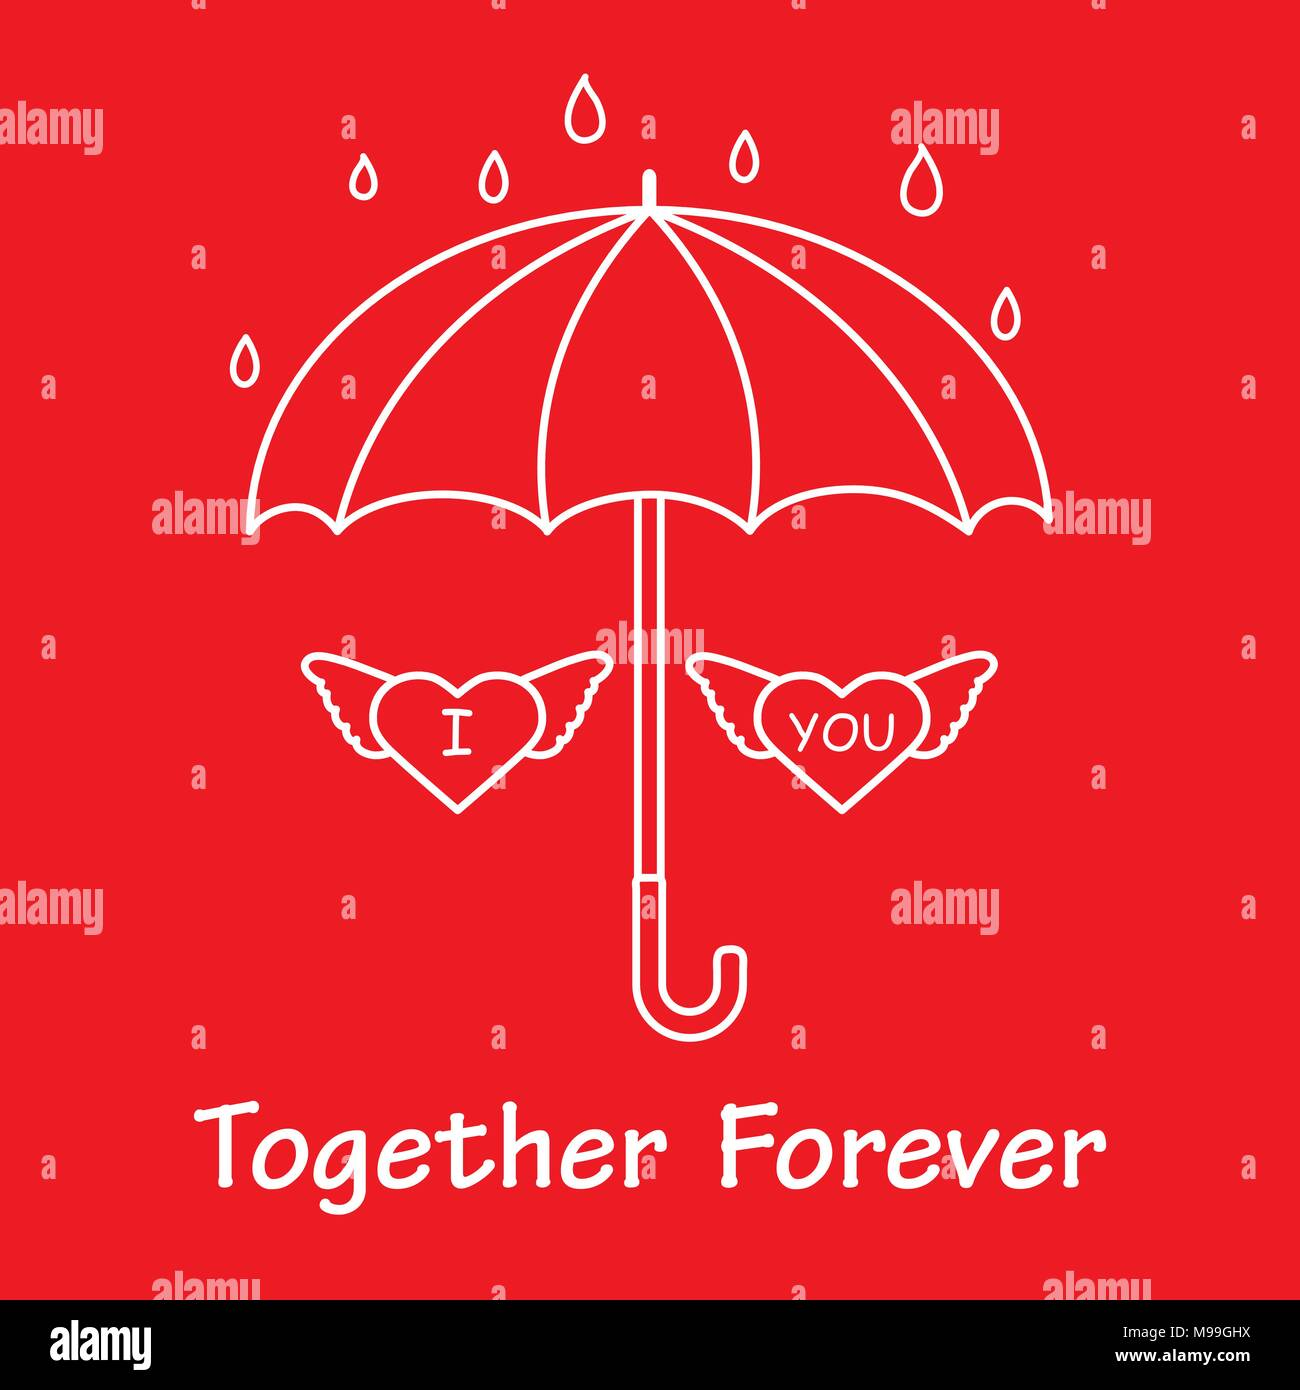 Two hearts with wings under an umbrella in the rain design for two hearts with wings under an umbrella in the rain design for banner poster or print greeting card valentines day m4hsunfo